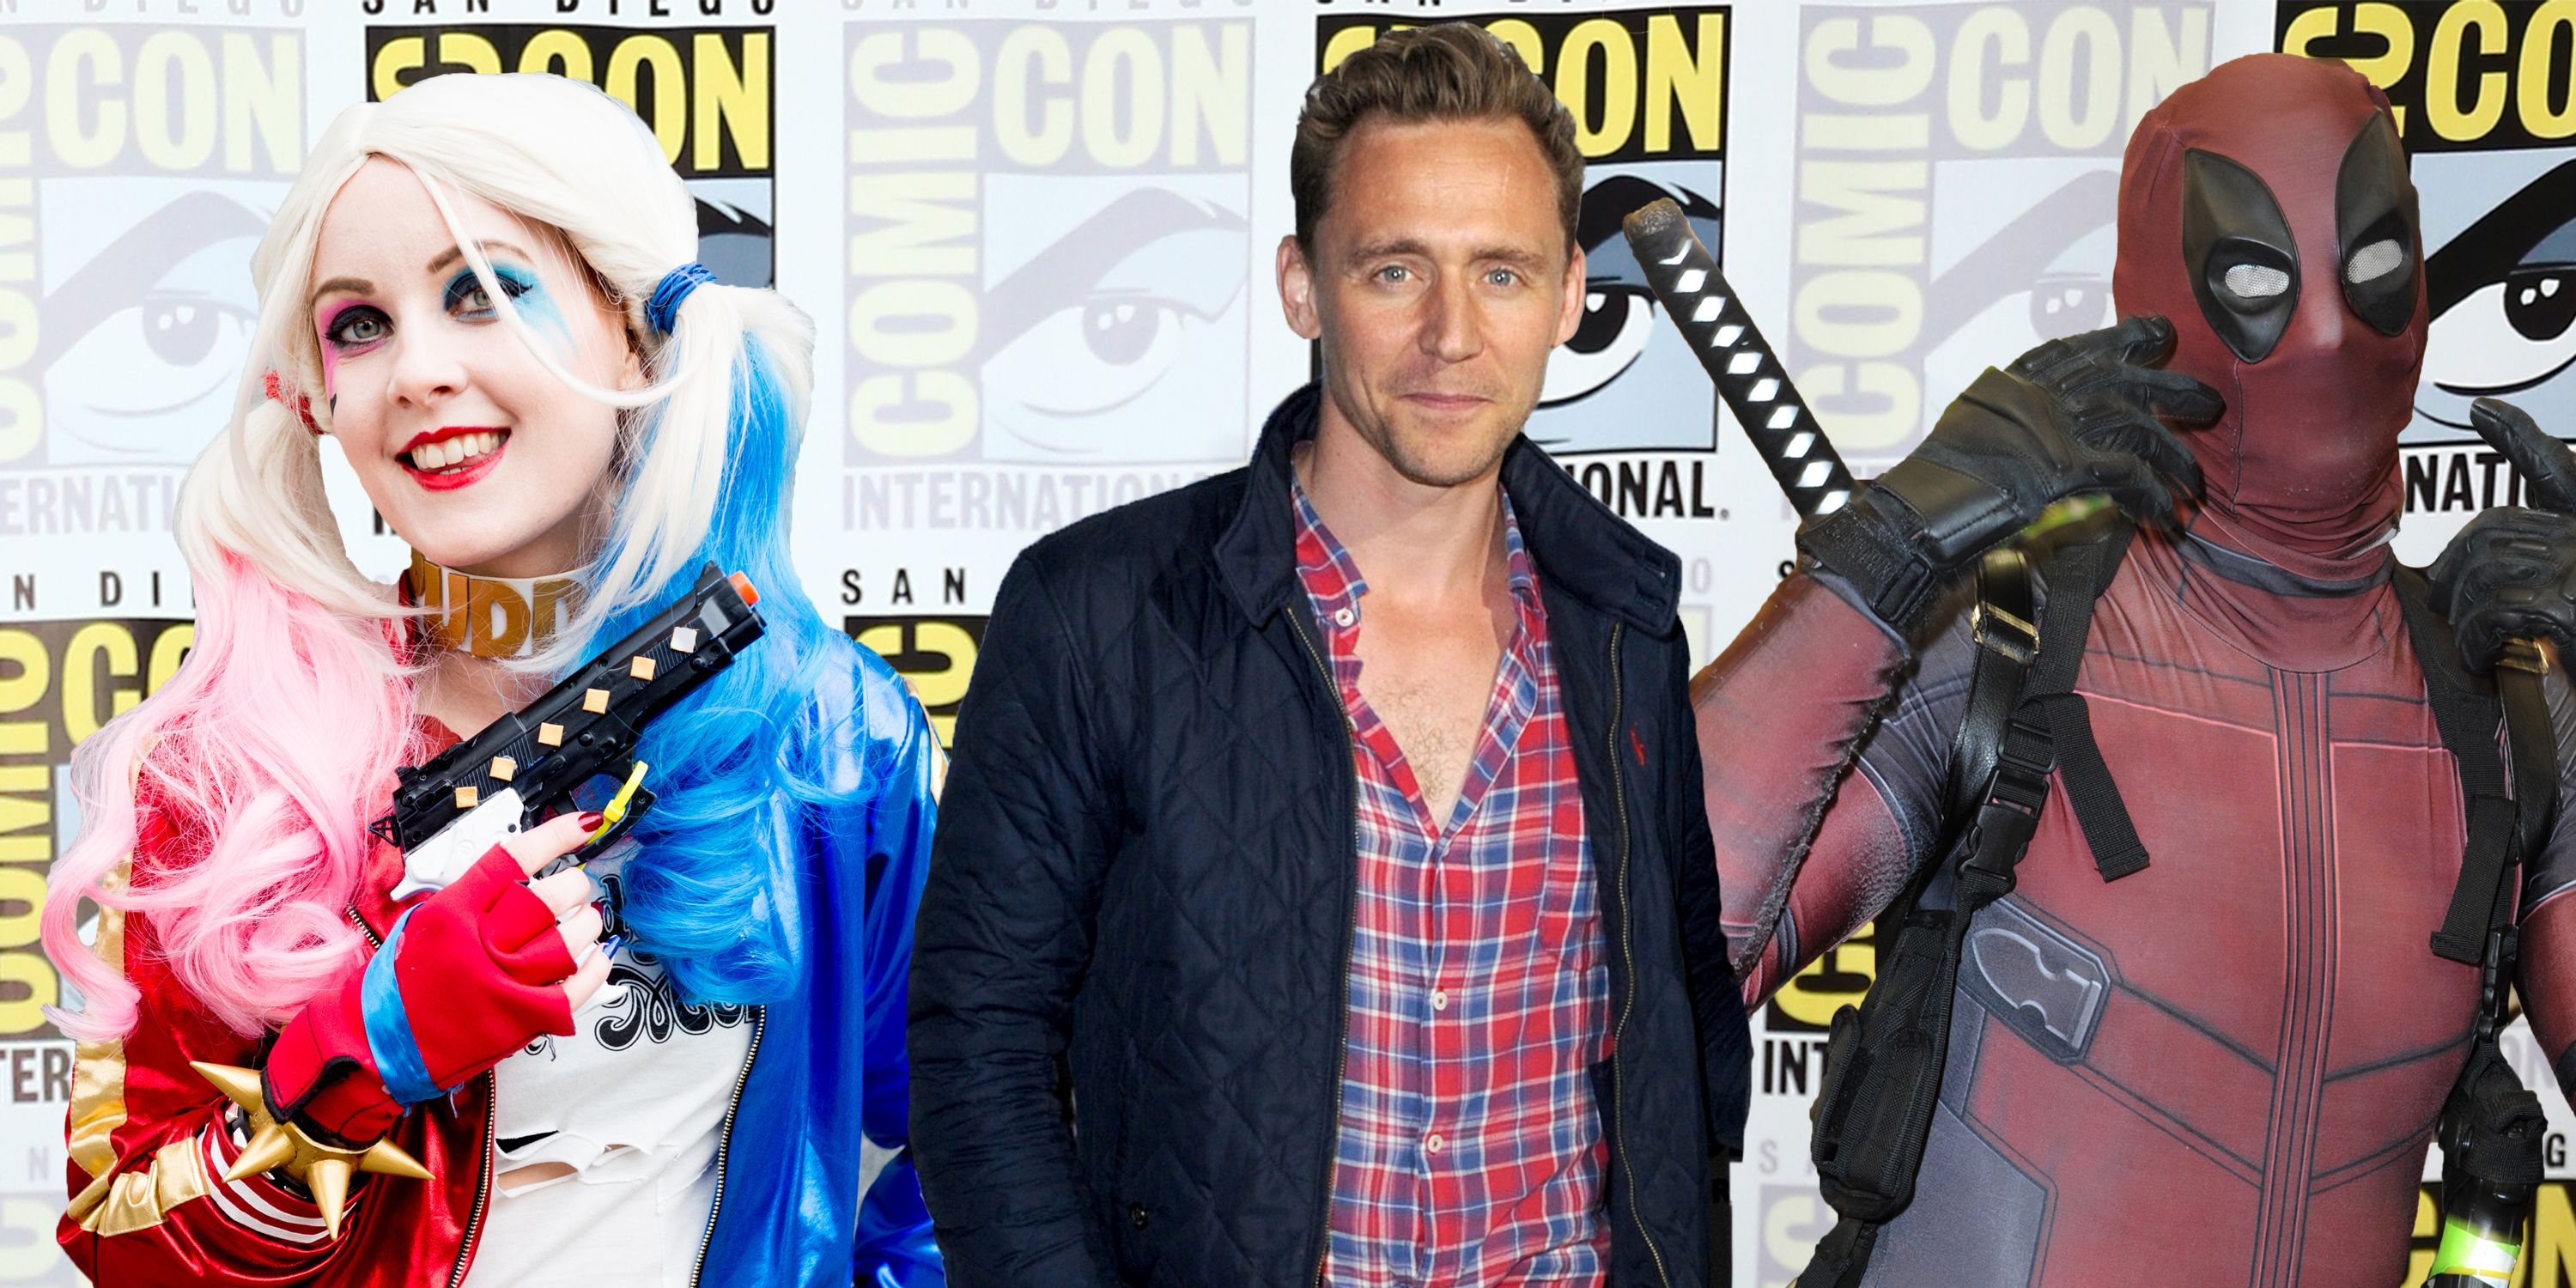 PHOTOSHOP, Comic-con International, Tom Hiddleston and cos-play costume wearers